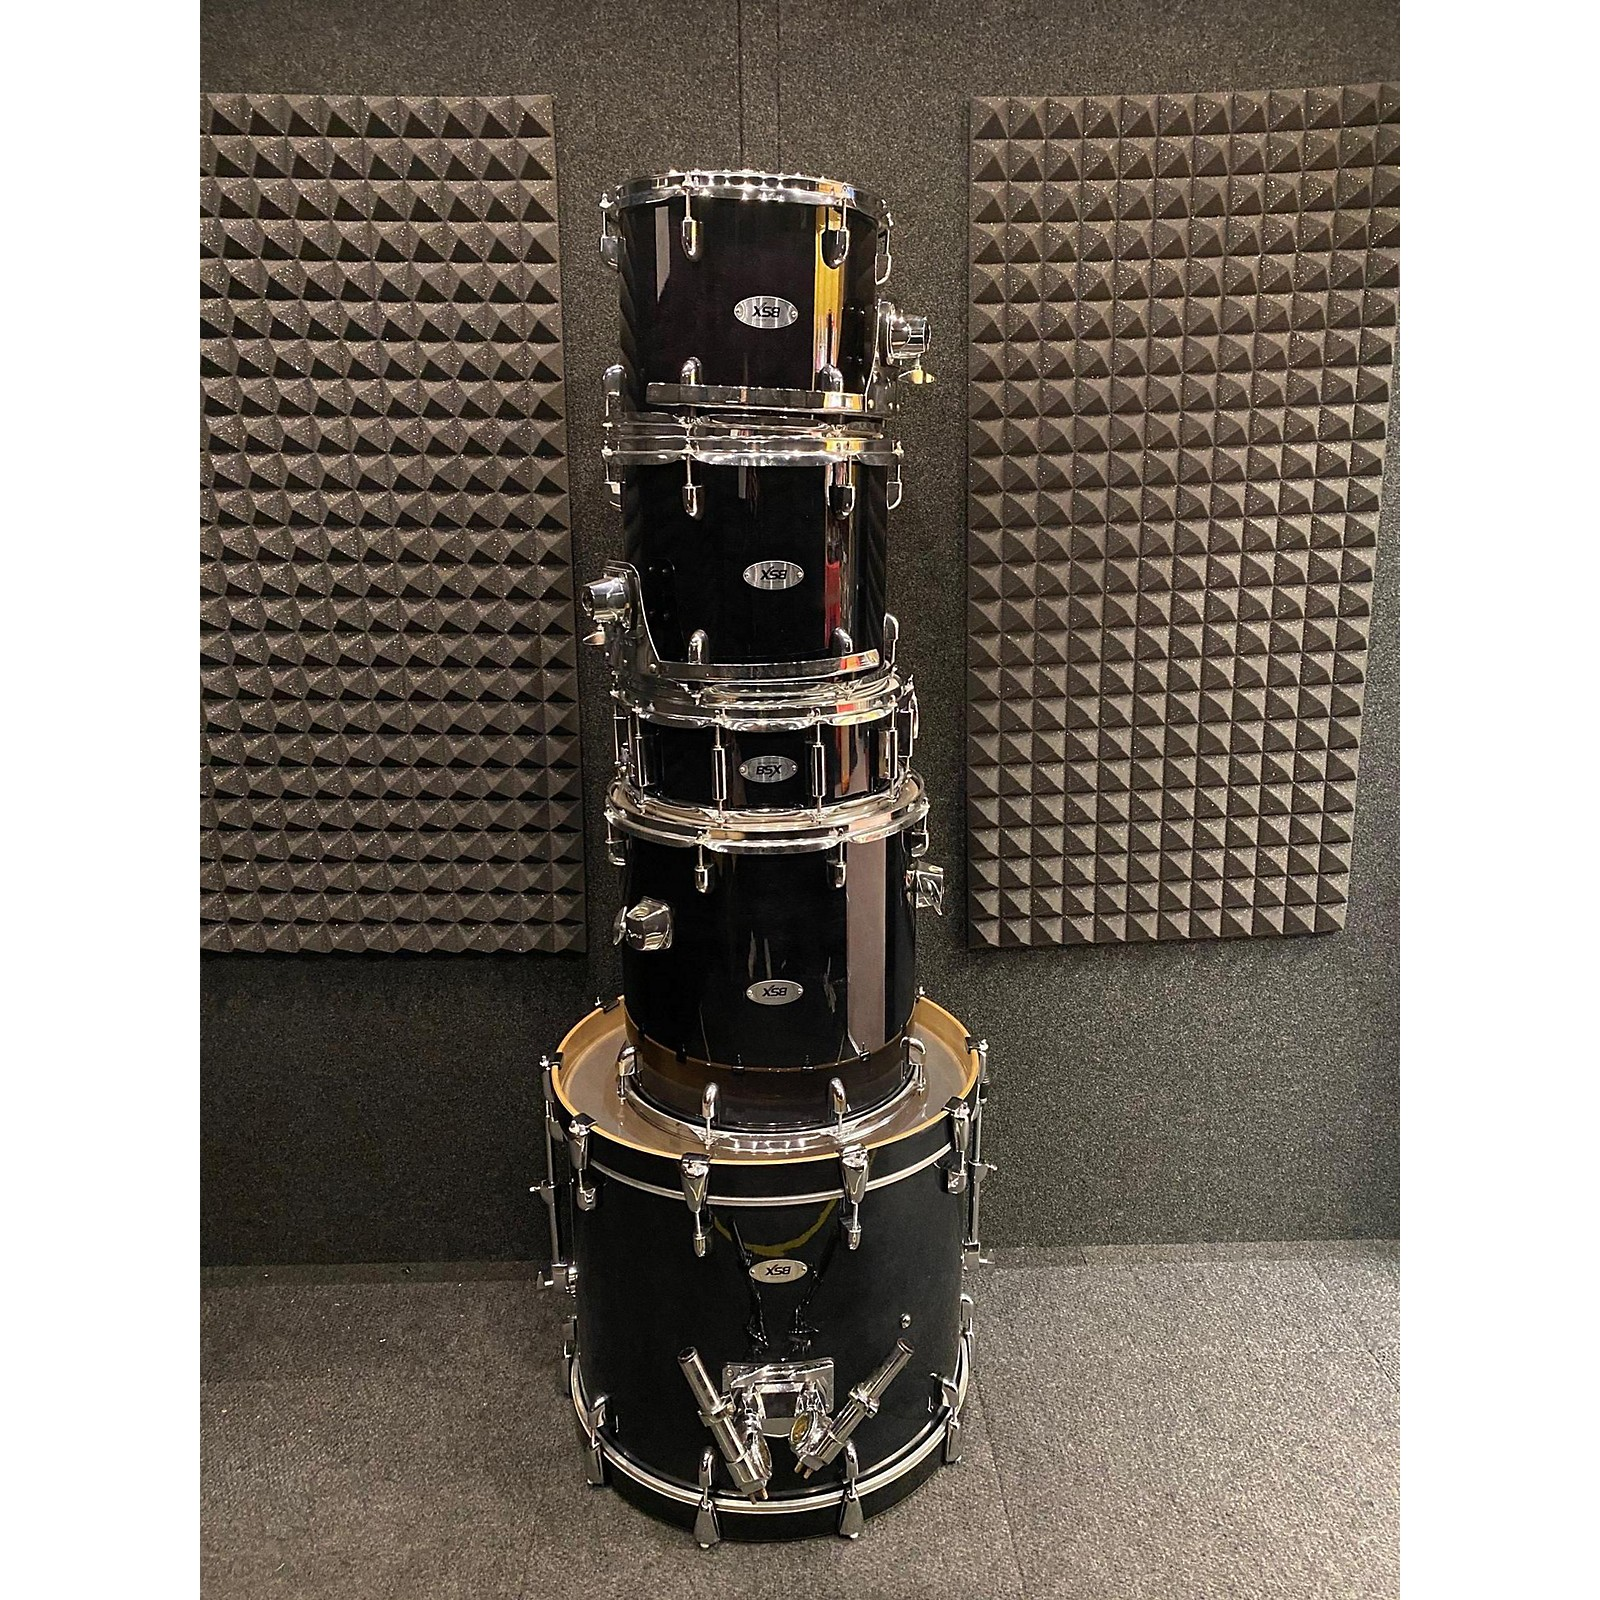 In Store Used Used BSX Drums 5 piece 5 Piece Trans Black Drum Kit